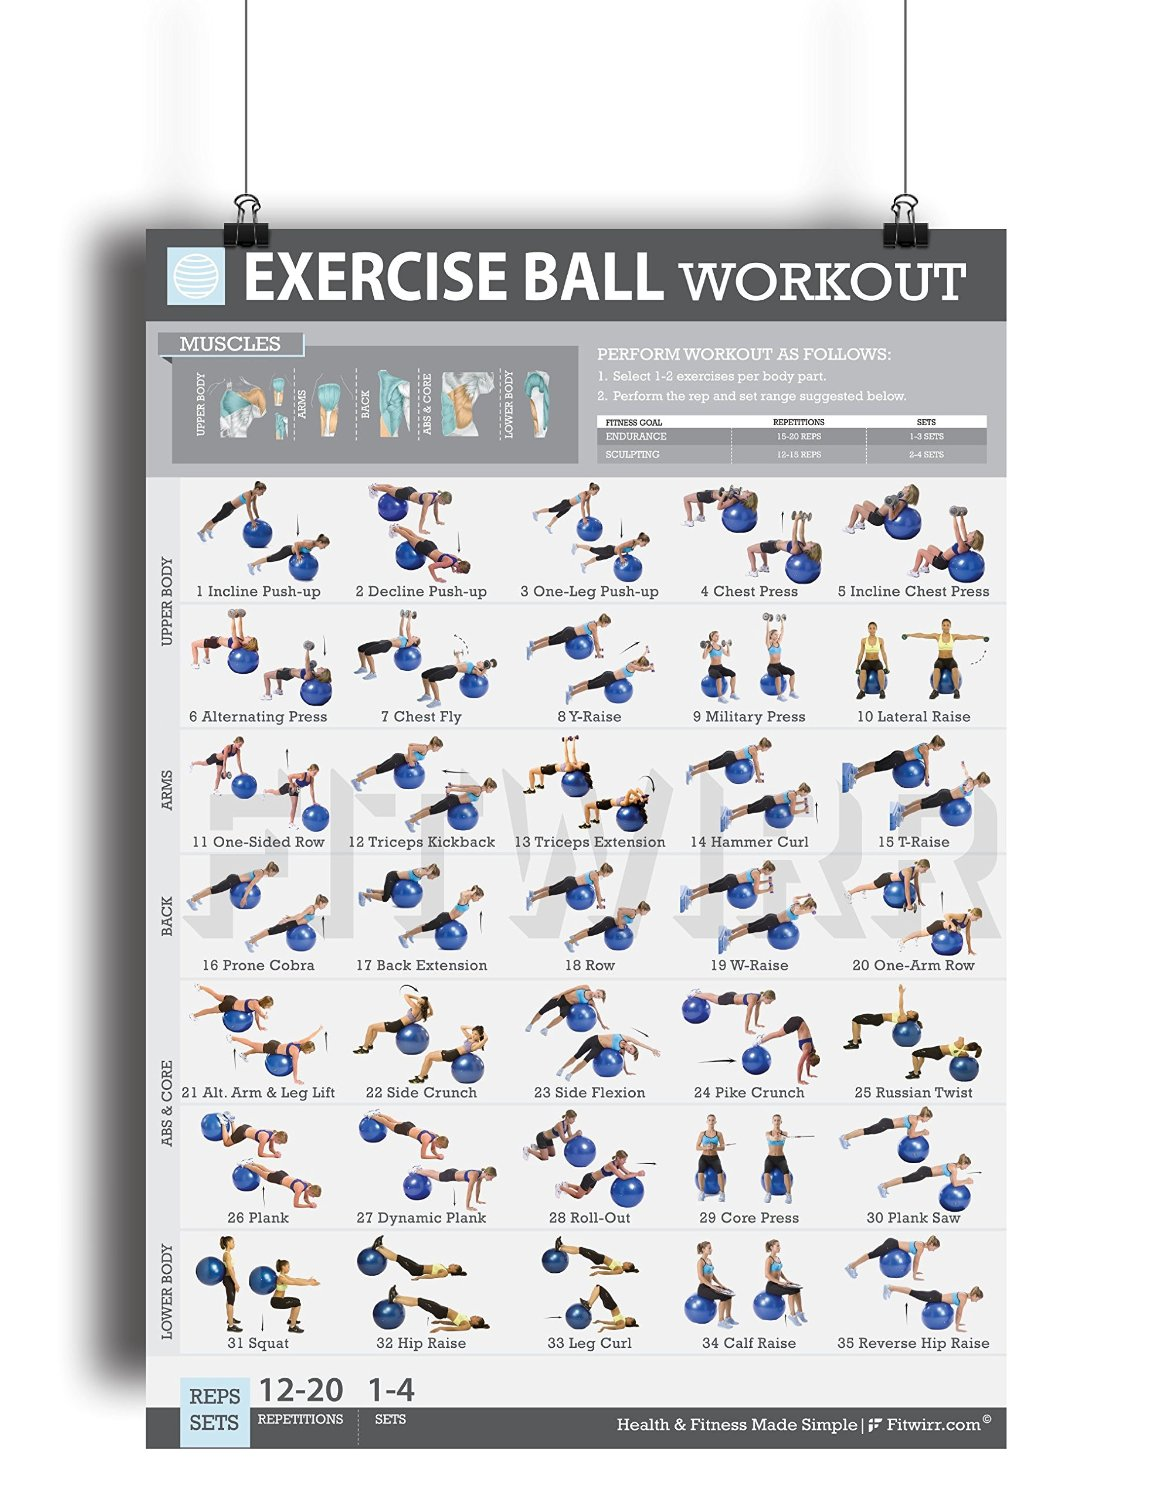 """Exercise Ball Workout Poster NOW LAMINATED - Total Body Workout -Fitness Ball Exercises - Body Toning, Sculpting - Home/Gym Workout - Core Training for Abs, Legs, and Butt - Rehabilitation 19""""X27"""""""